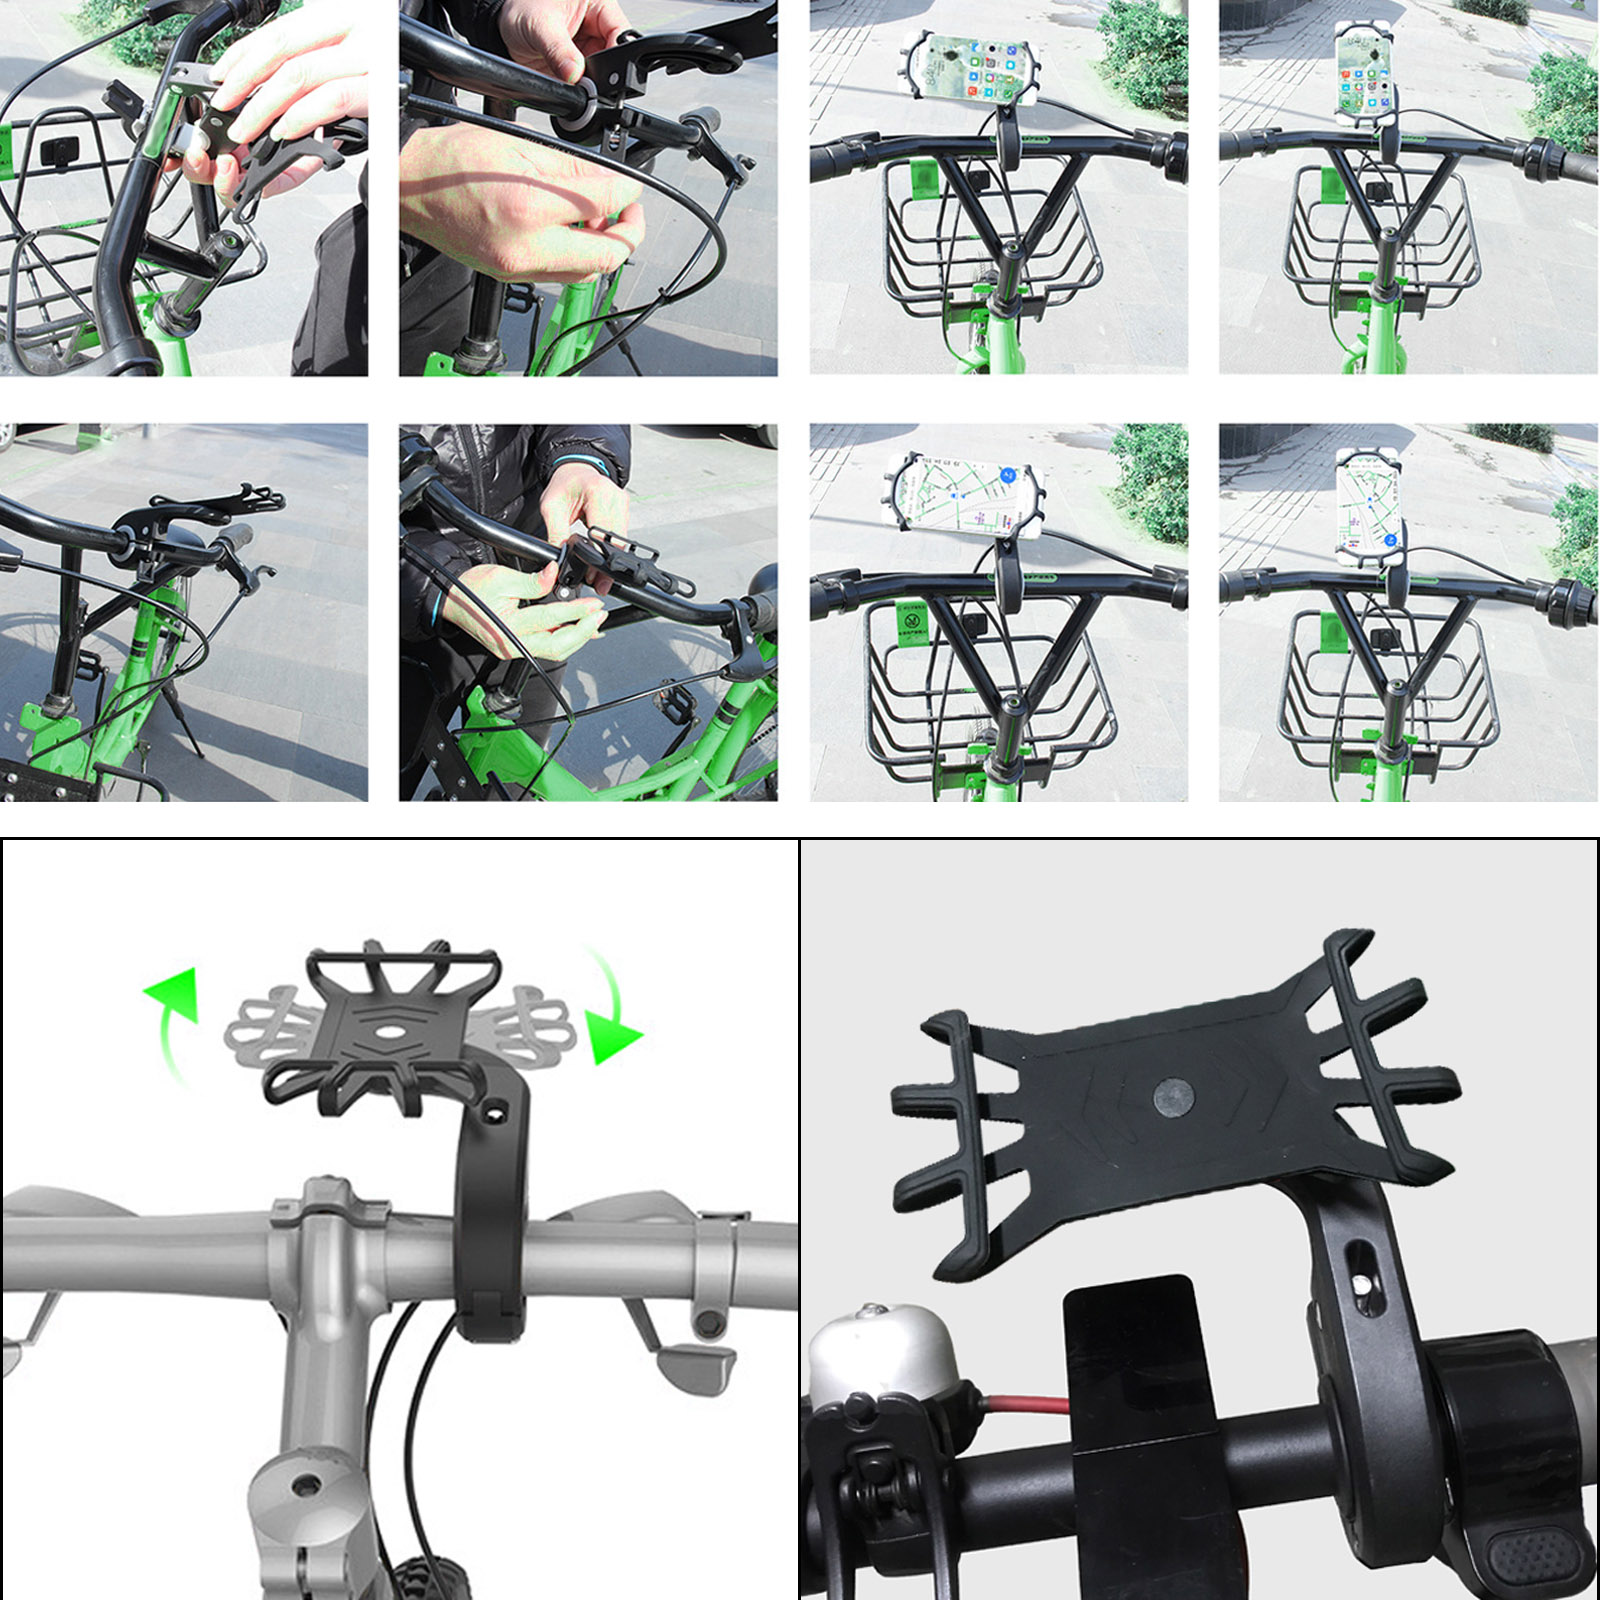 Universal Bicycle Mobile Phone Holder for Mobile Cell Phone GPS Silicone Motorcycle Bike Cycling Handlebar Stand Support Bracket